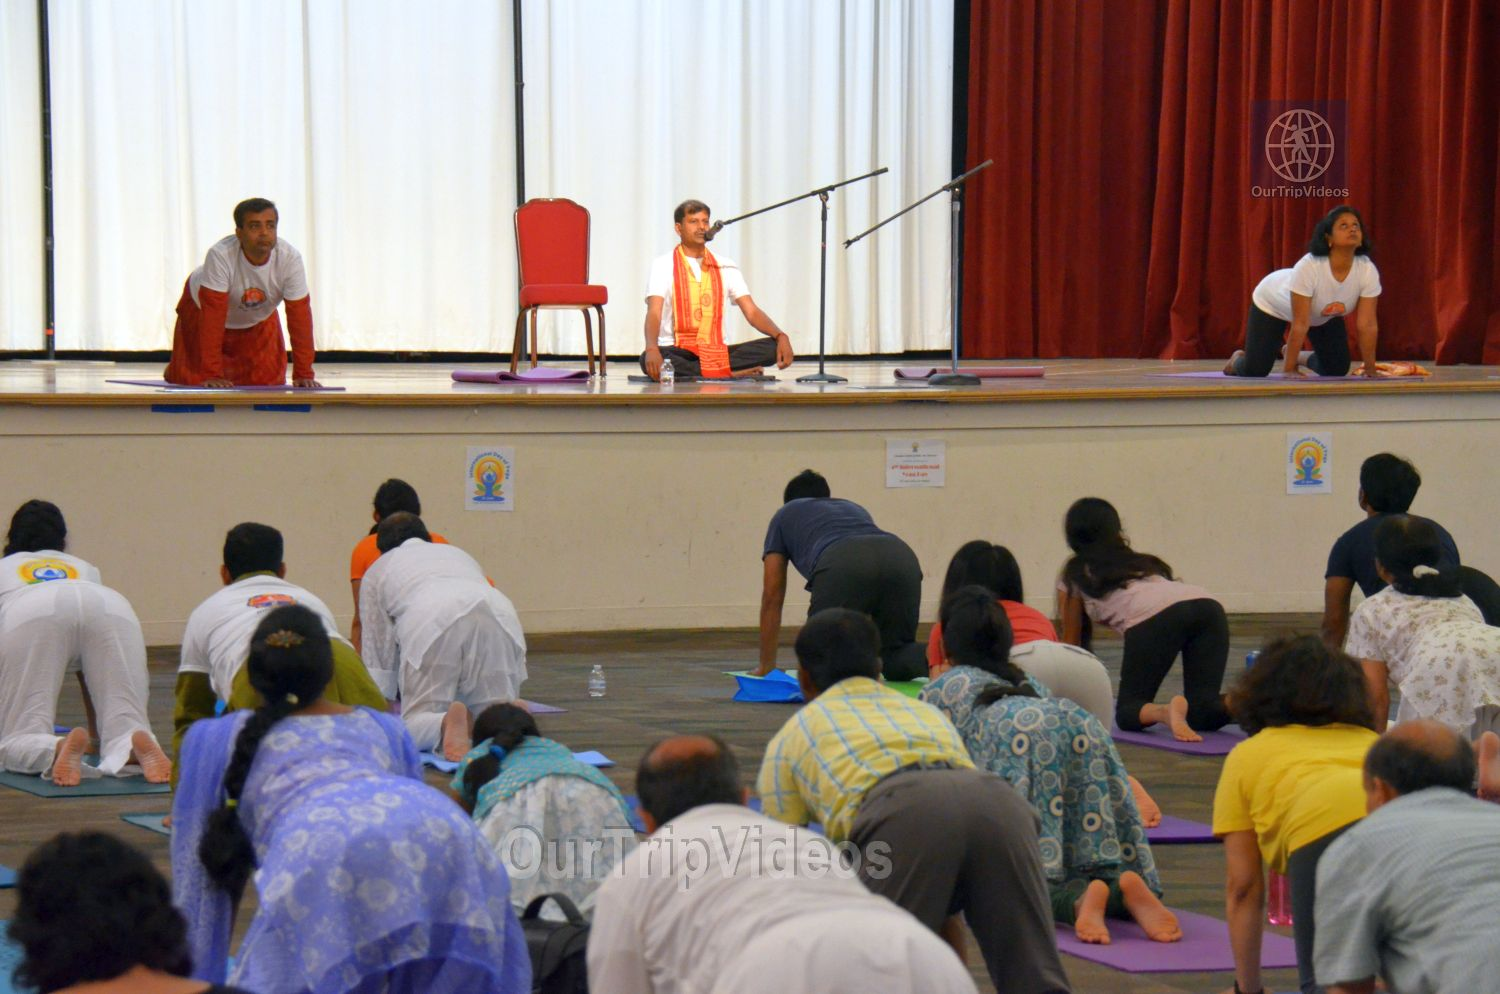 International Yoga Day at ICC, Milpitas, CA, USA - Picture 43 of 50